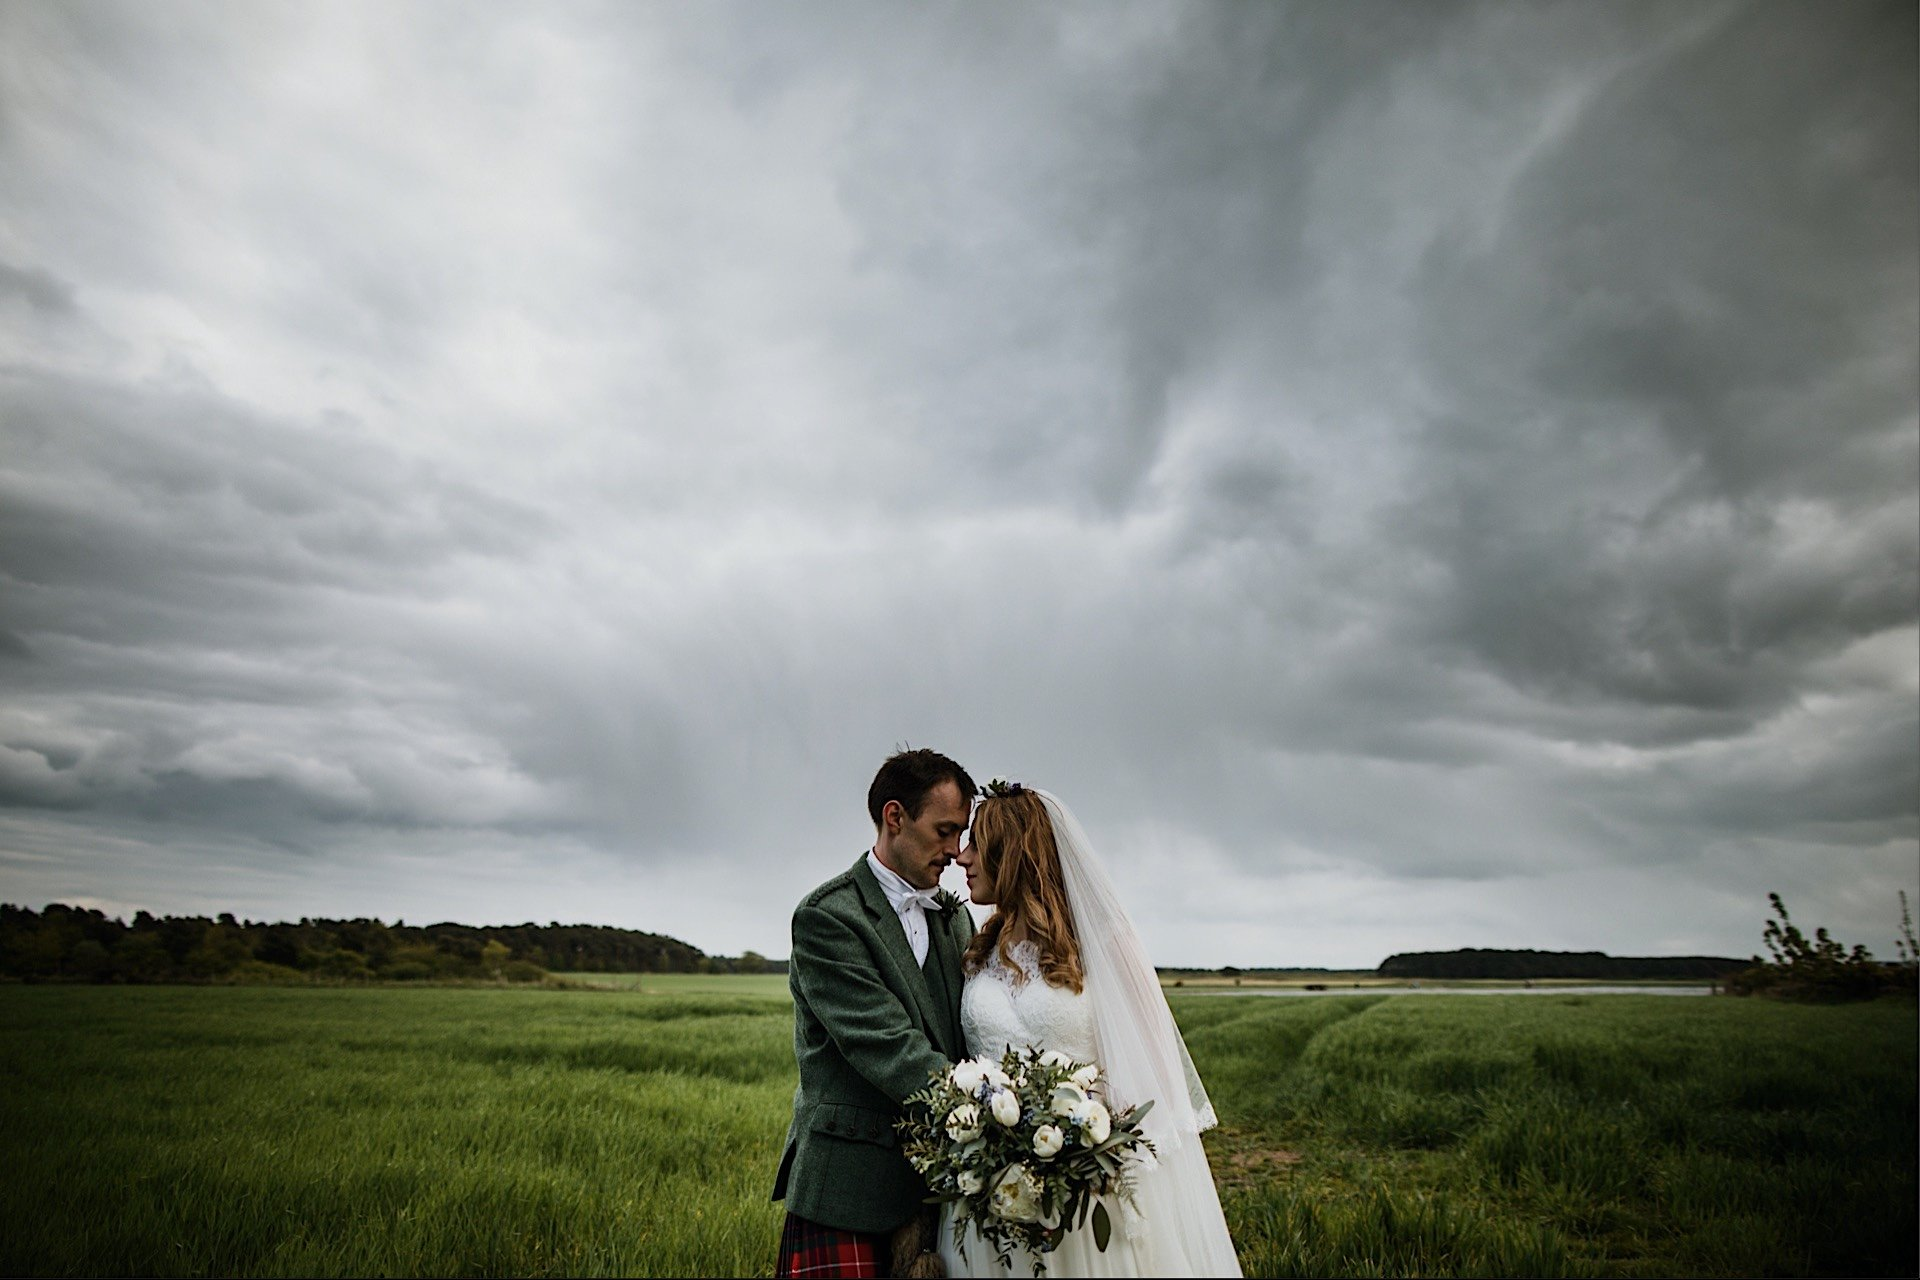 bride anothr grey stormy in facing green behind With field and one them groom sky